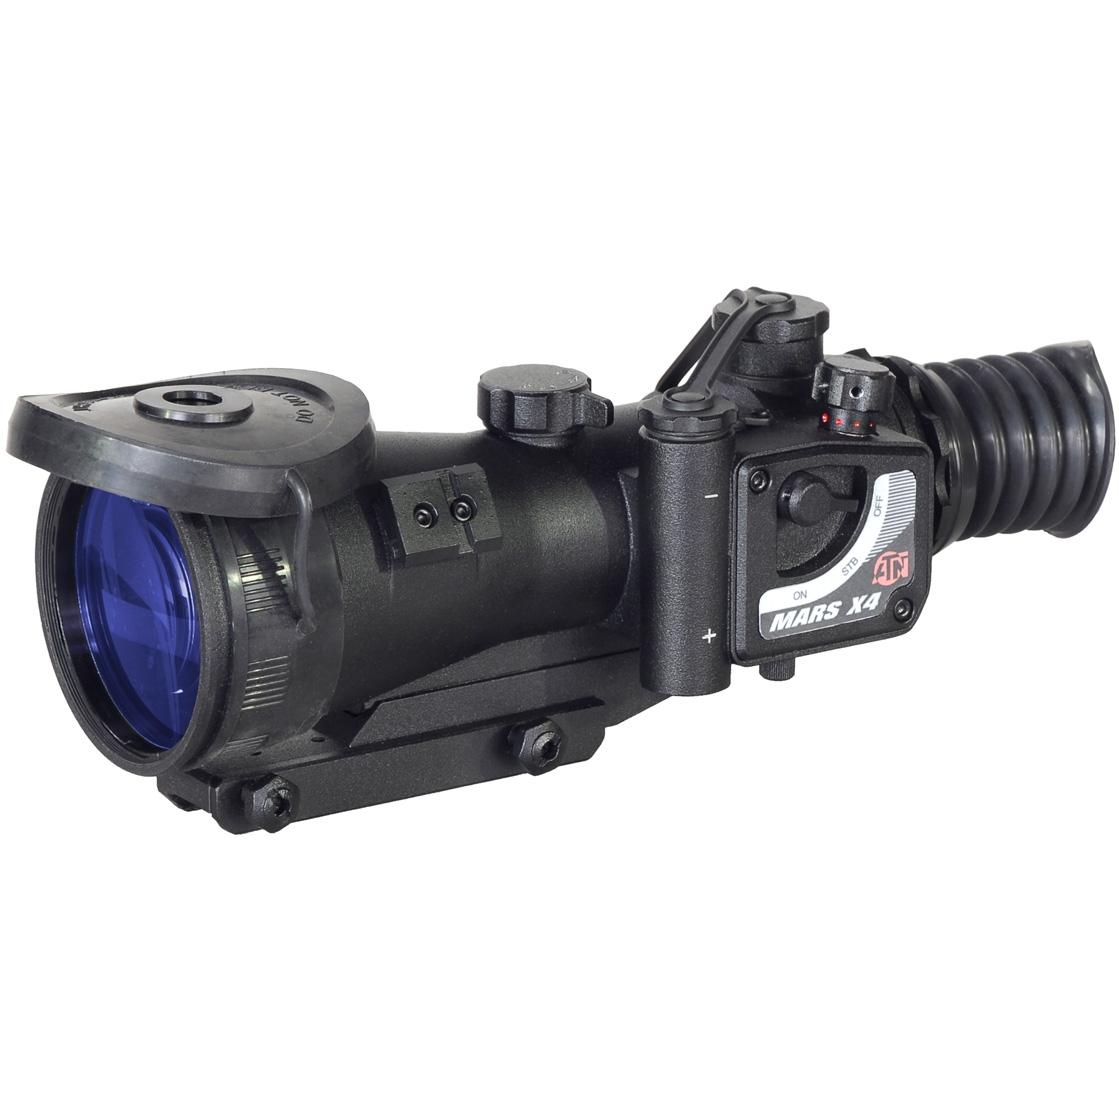 Picture of ATN MARS4X Night Vision Weapon Scope With Gen 3A 64-72 Lp/mm Resolution - NVWSMRS43A